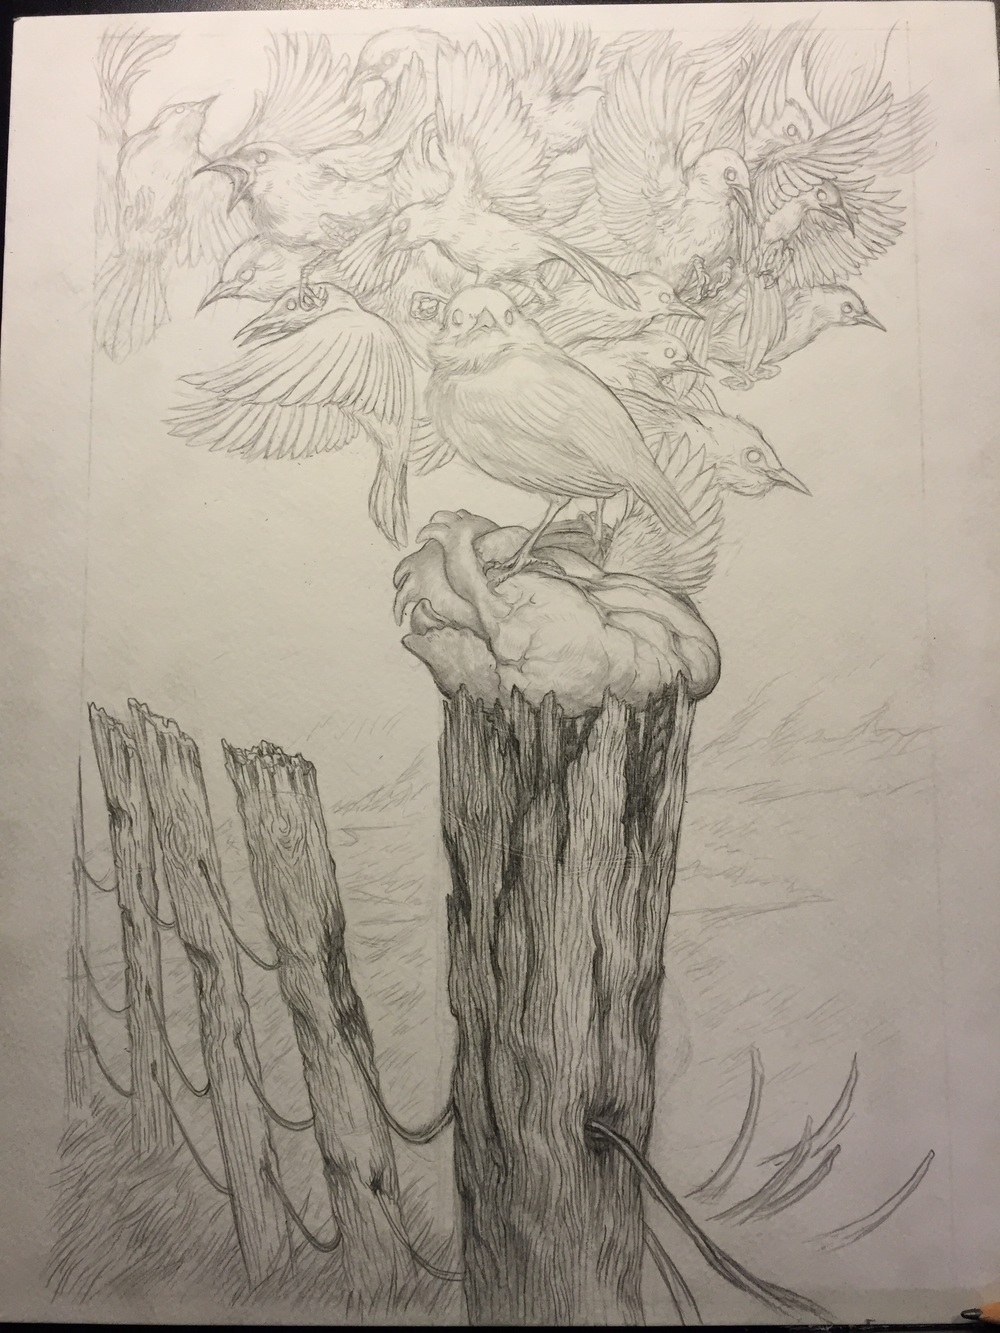 Final pencil work before inking